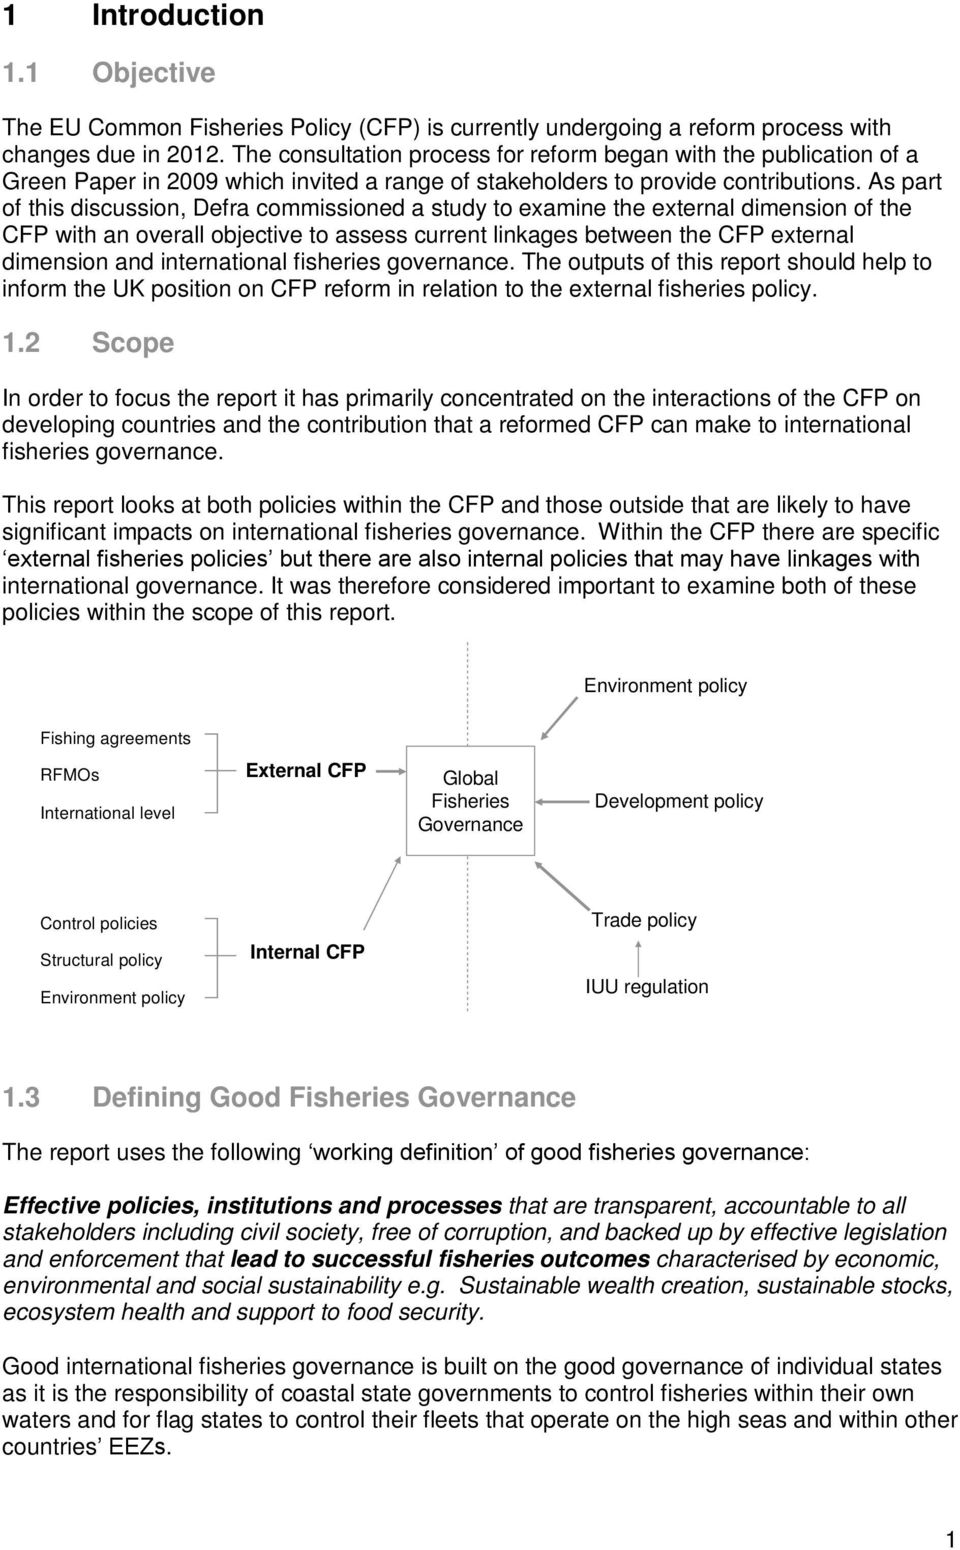 As part of this discussion, Defra commissioned a study to examine the external dimension of the CFP with an overall objective to assess current linkages between the CFP external dimension and